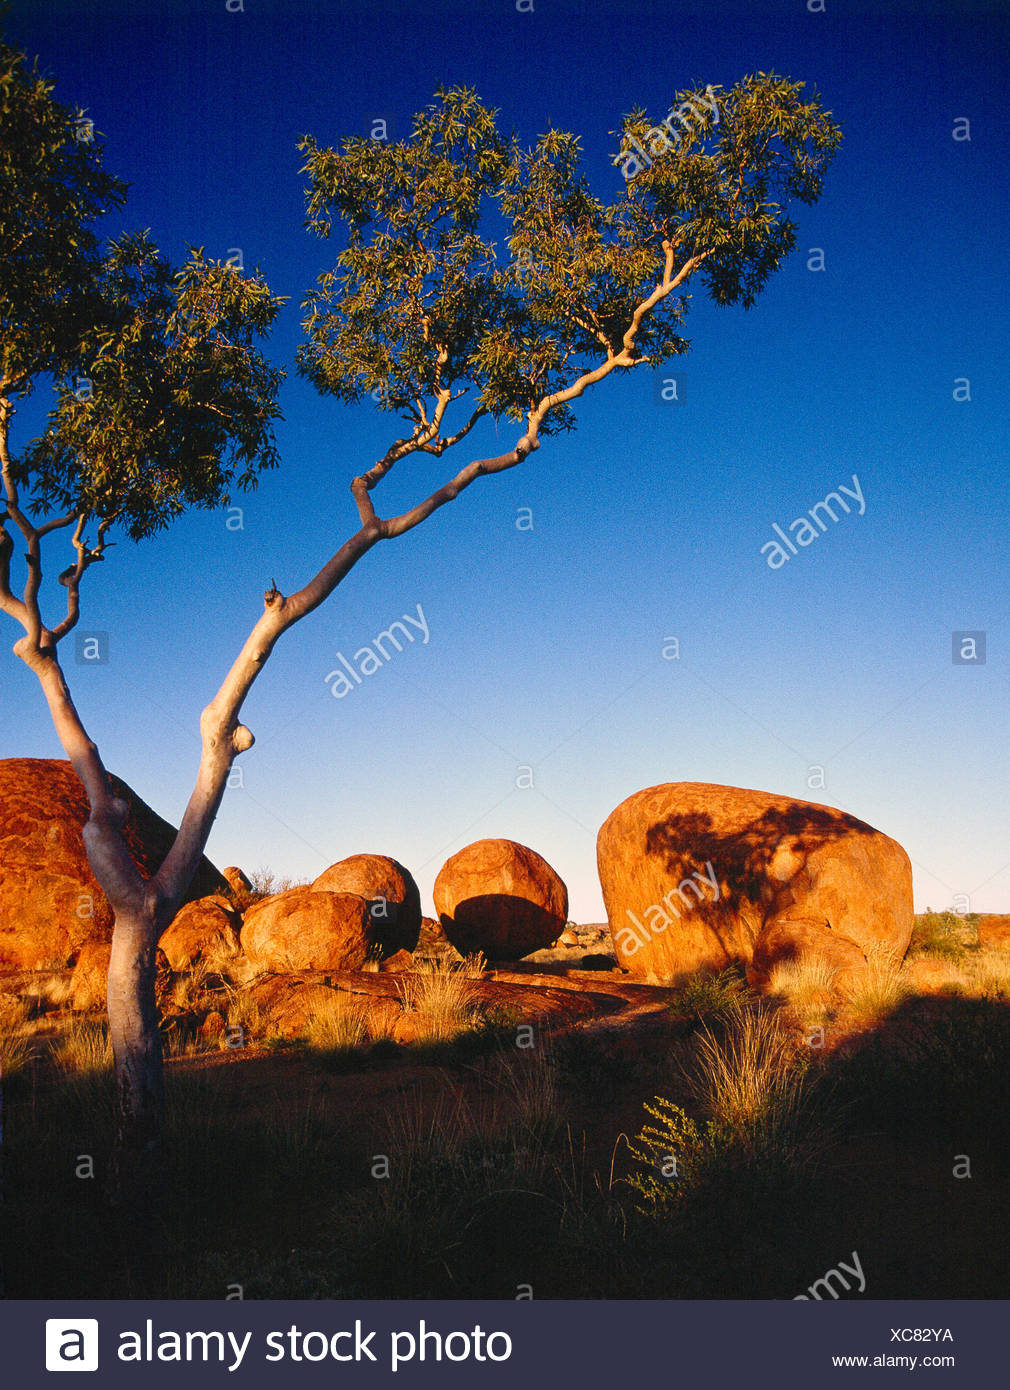 Australia. Northern Territory. Tennant Creek. Devils Marbles rock formations. - Stock Image